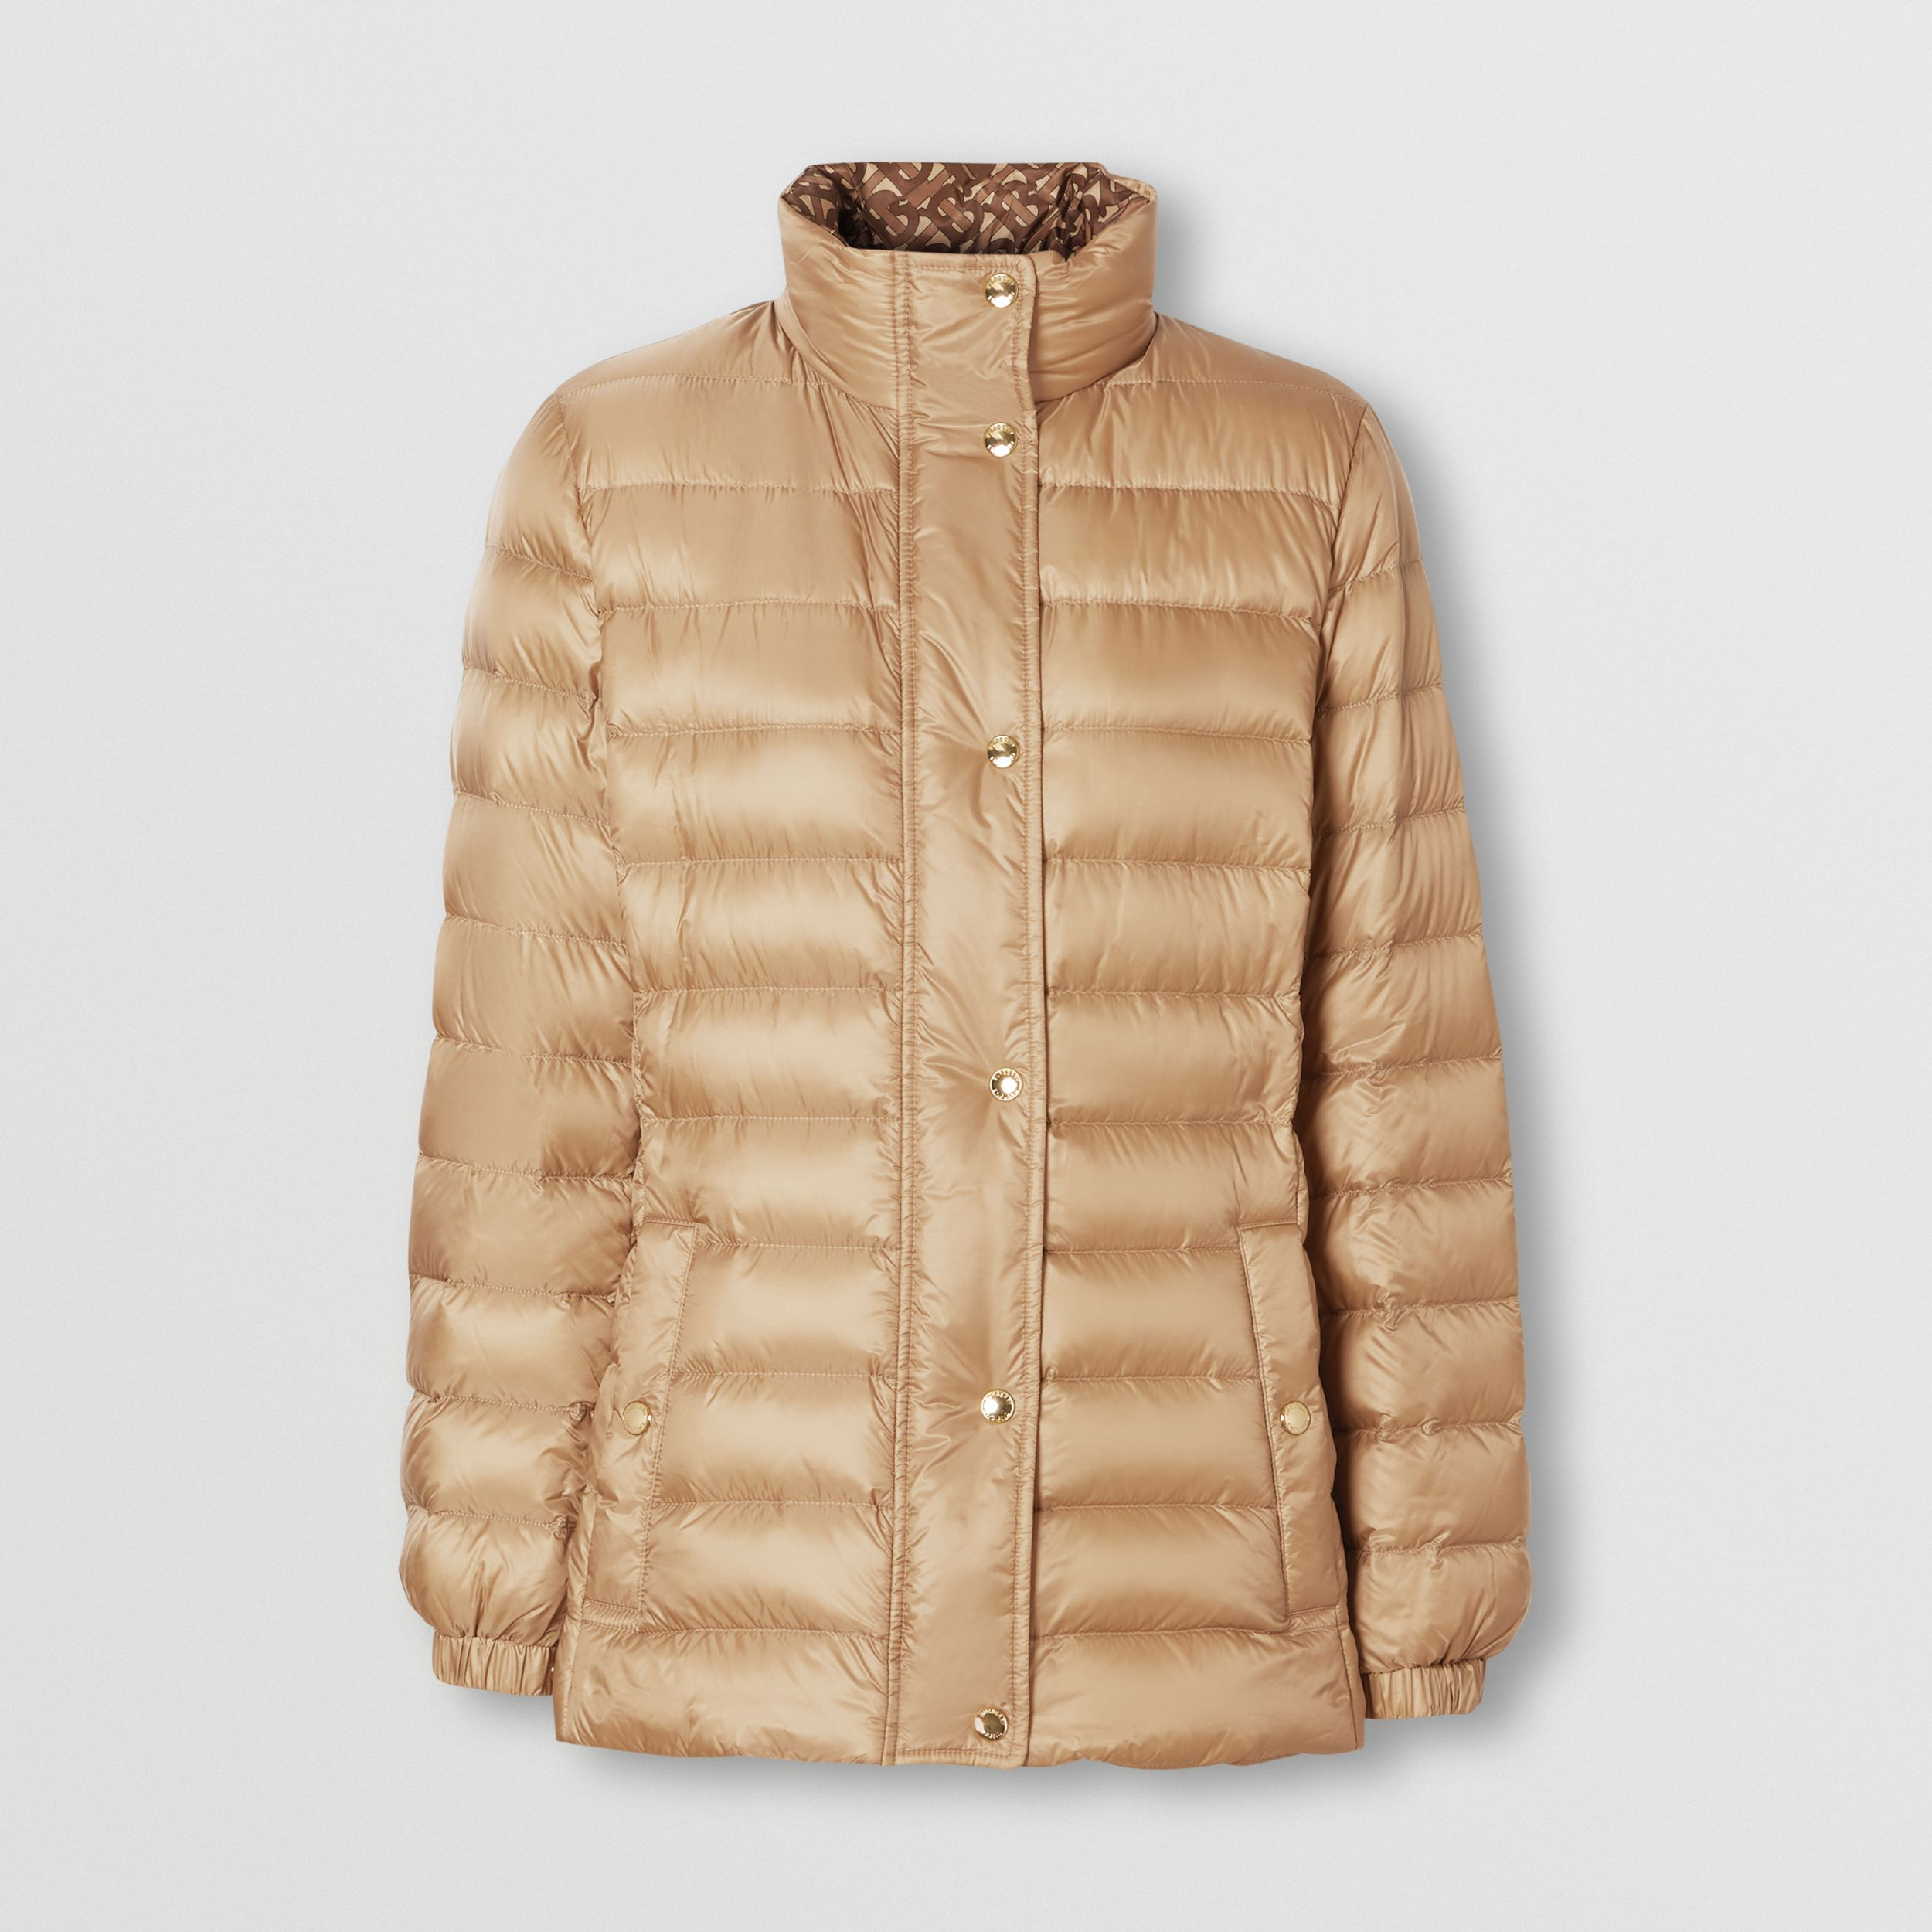 Monogram Print-lined Lightweight Puffer Jacket - Women | Burberry - 4